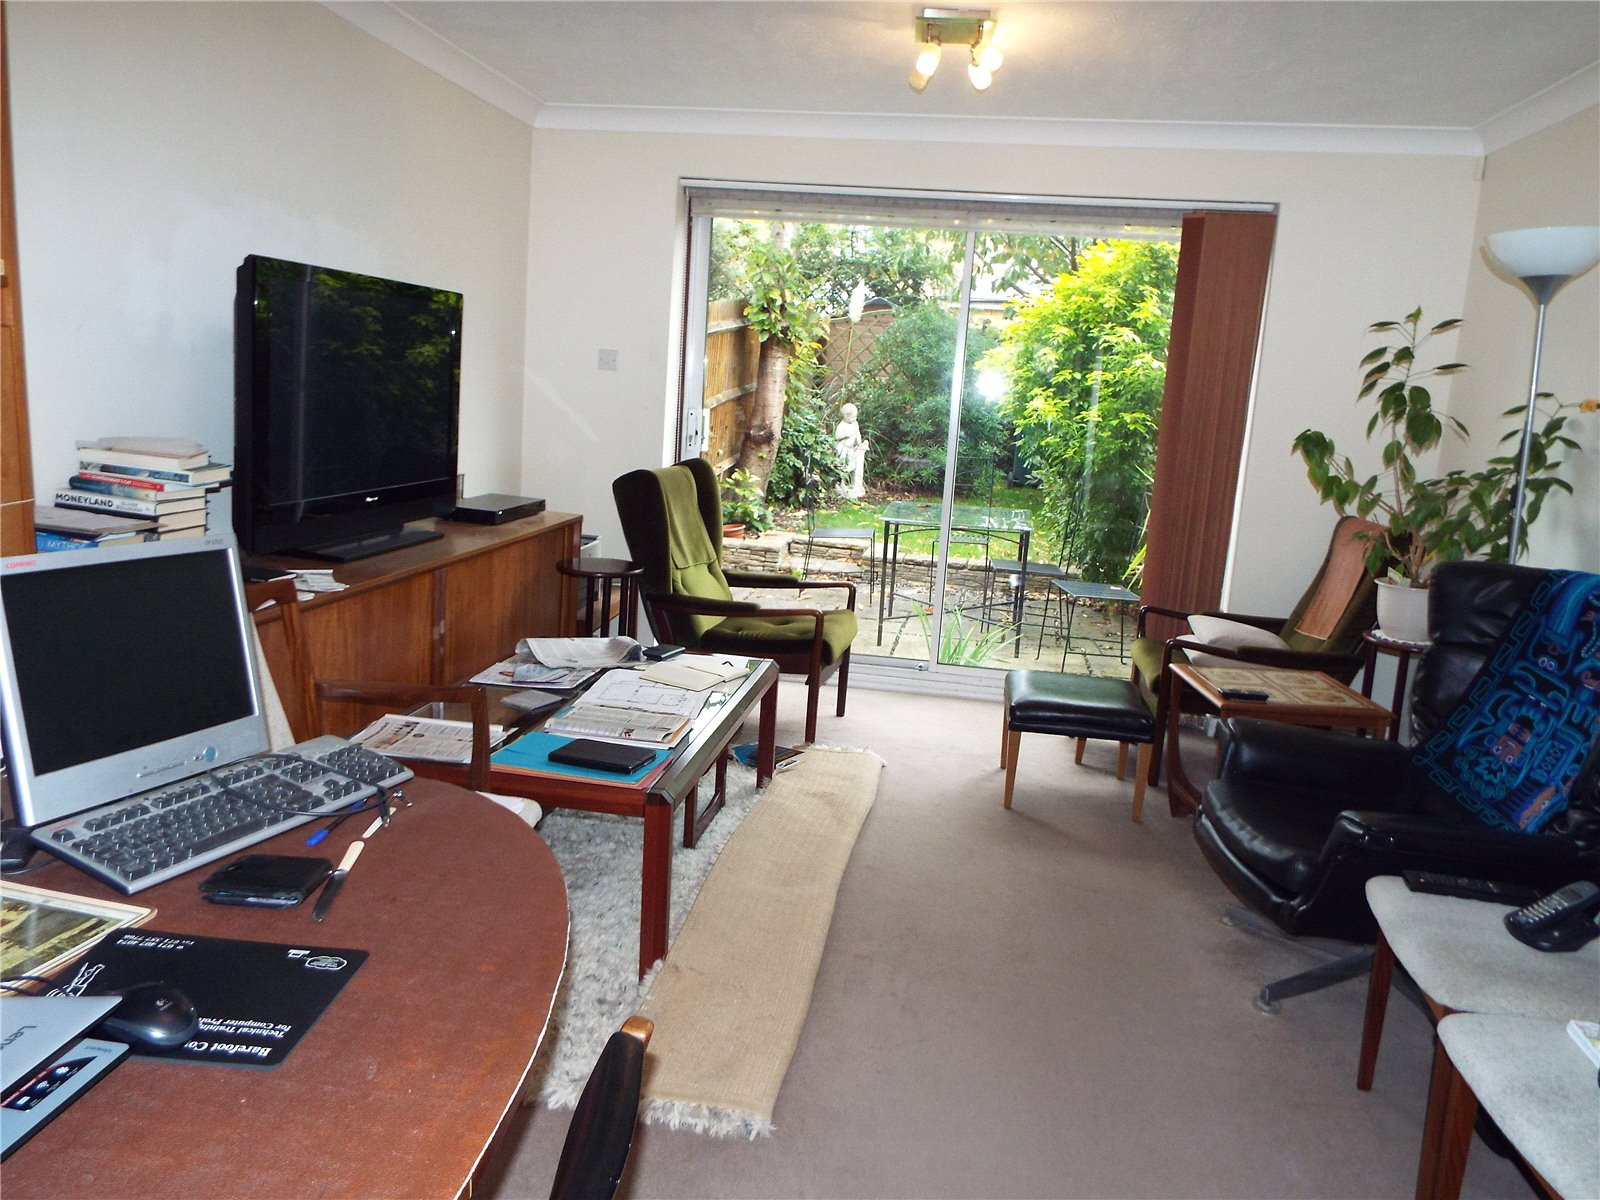 2 bed house to rent in New Southgate, N11 3PY 3